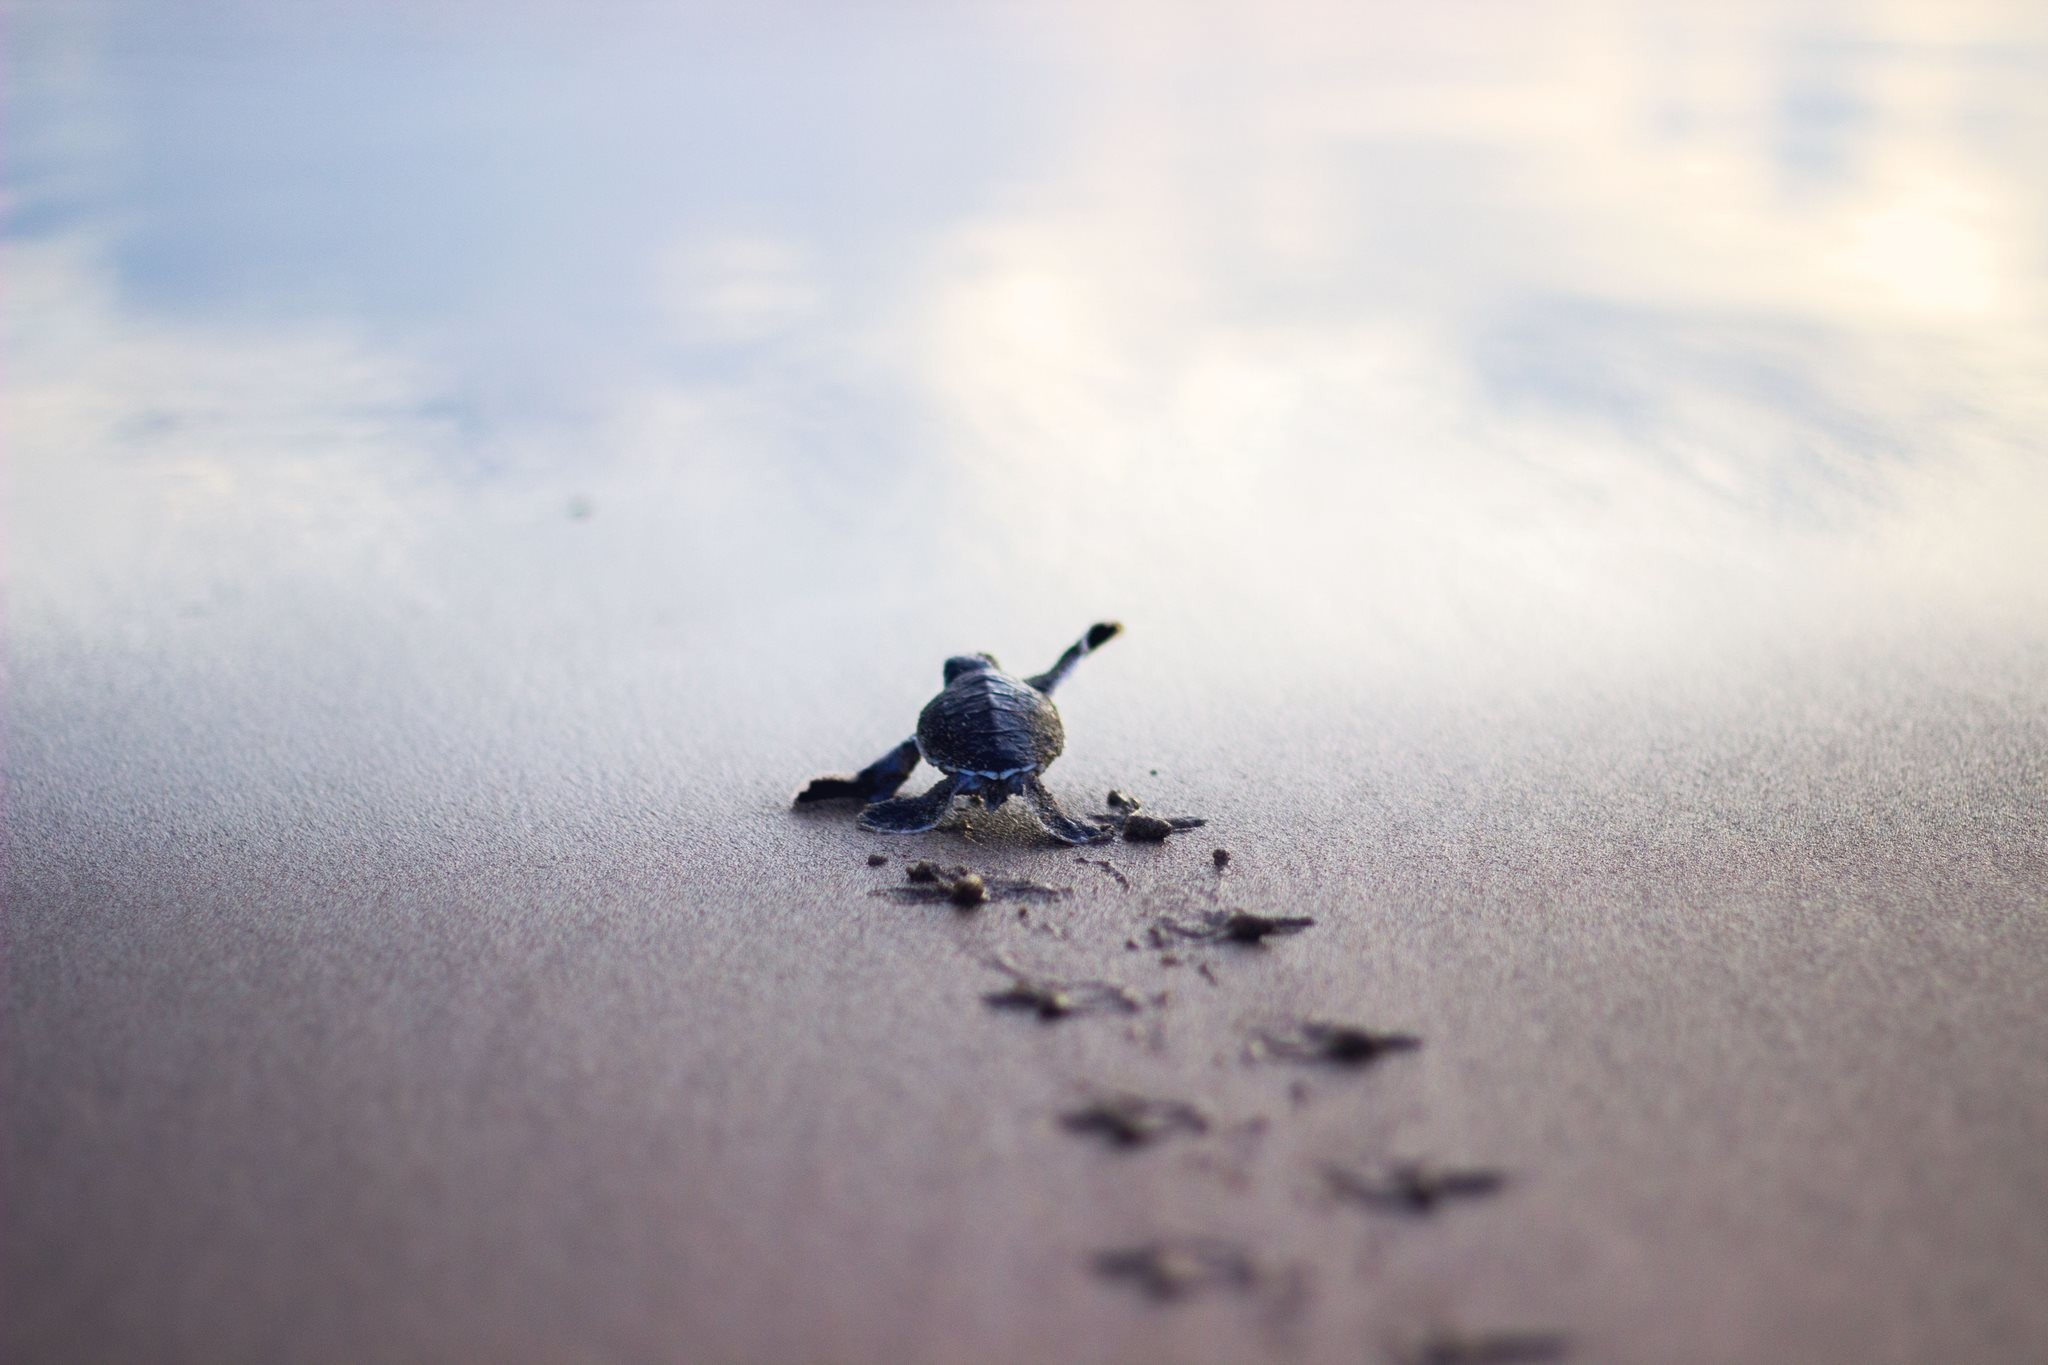 Baby turtle running to the safety of the sea shore : pics